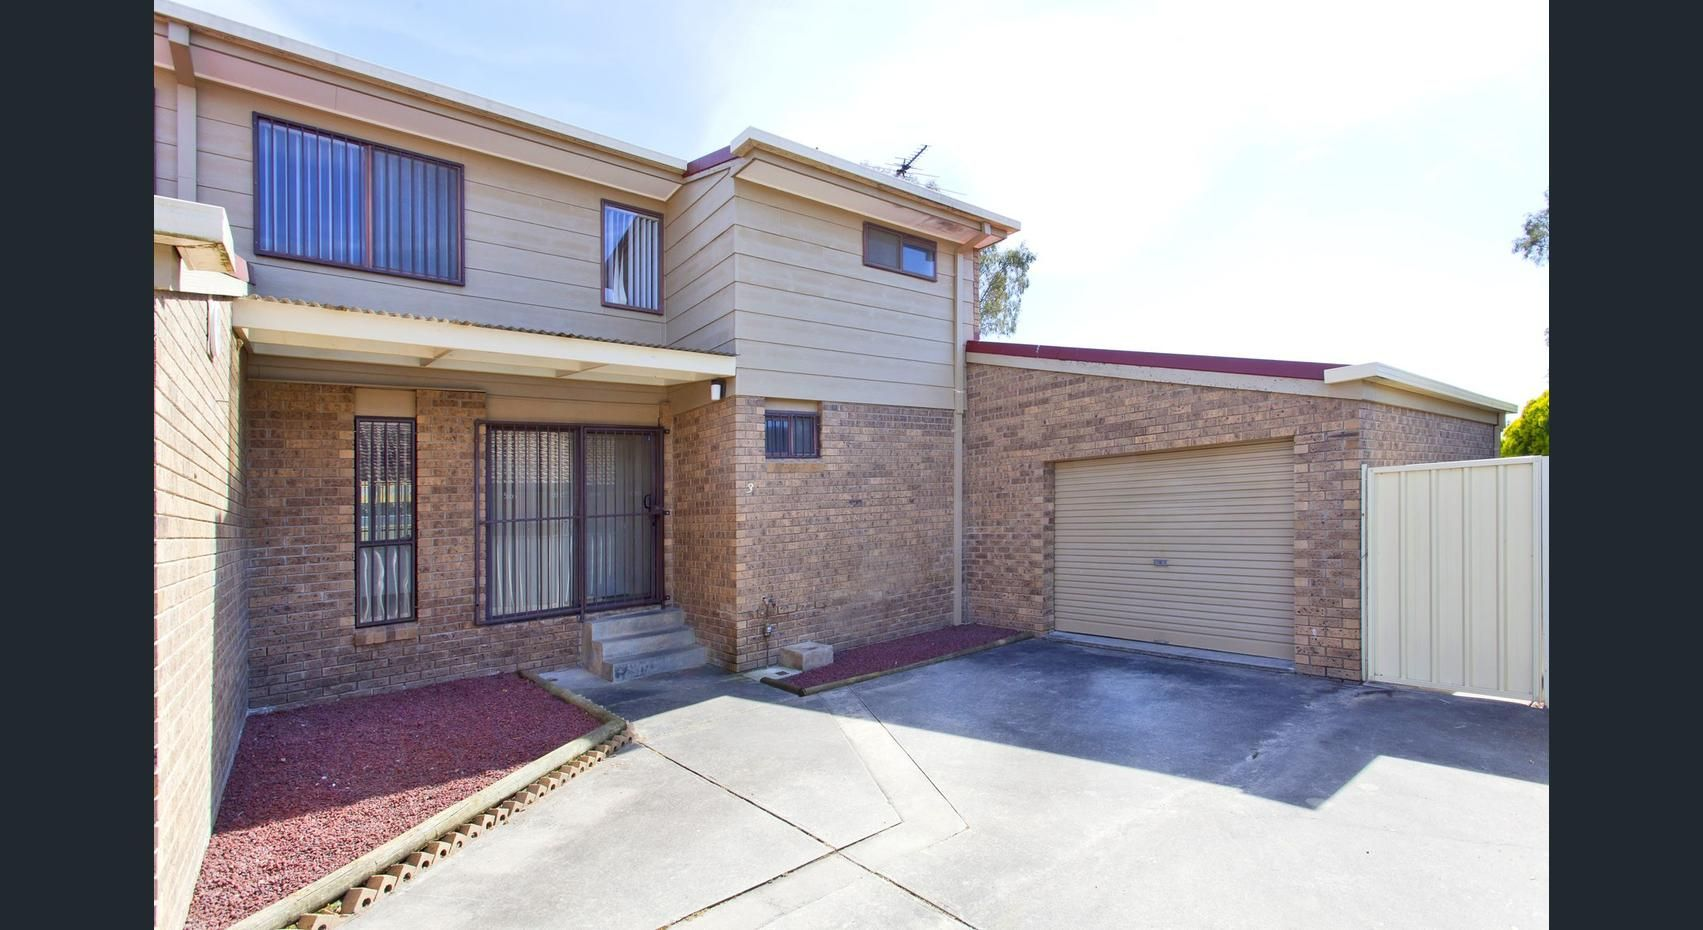 3/988 Fairview Drive, North Albury NSW 2640, Image 0